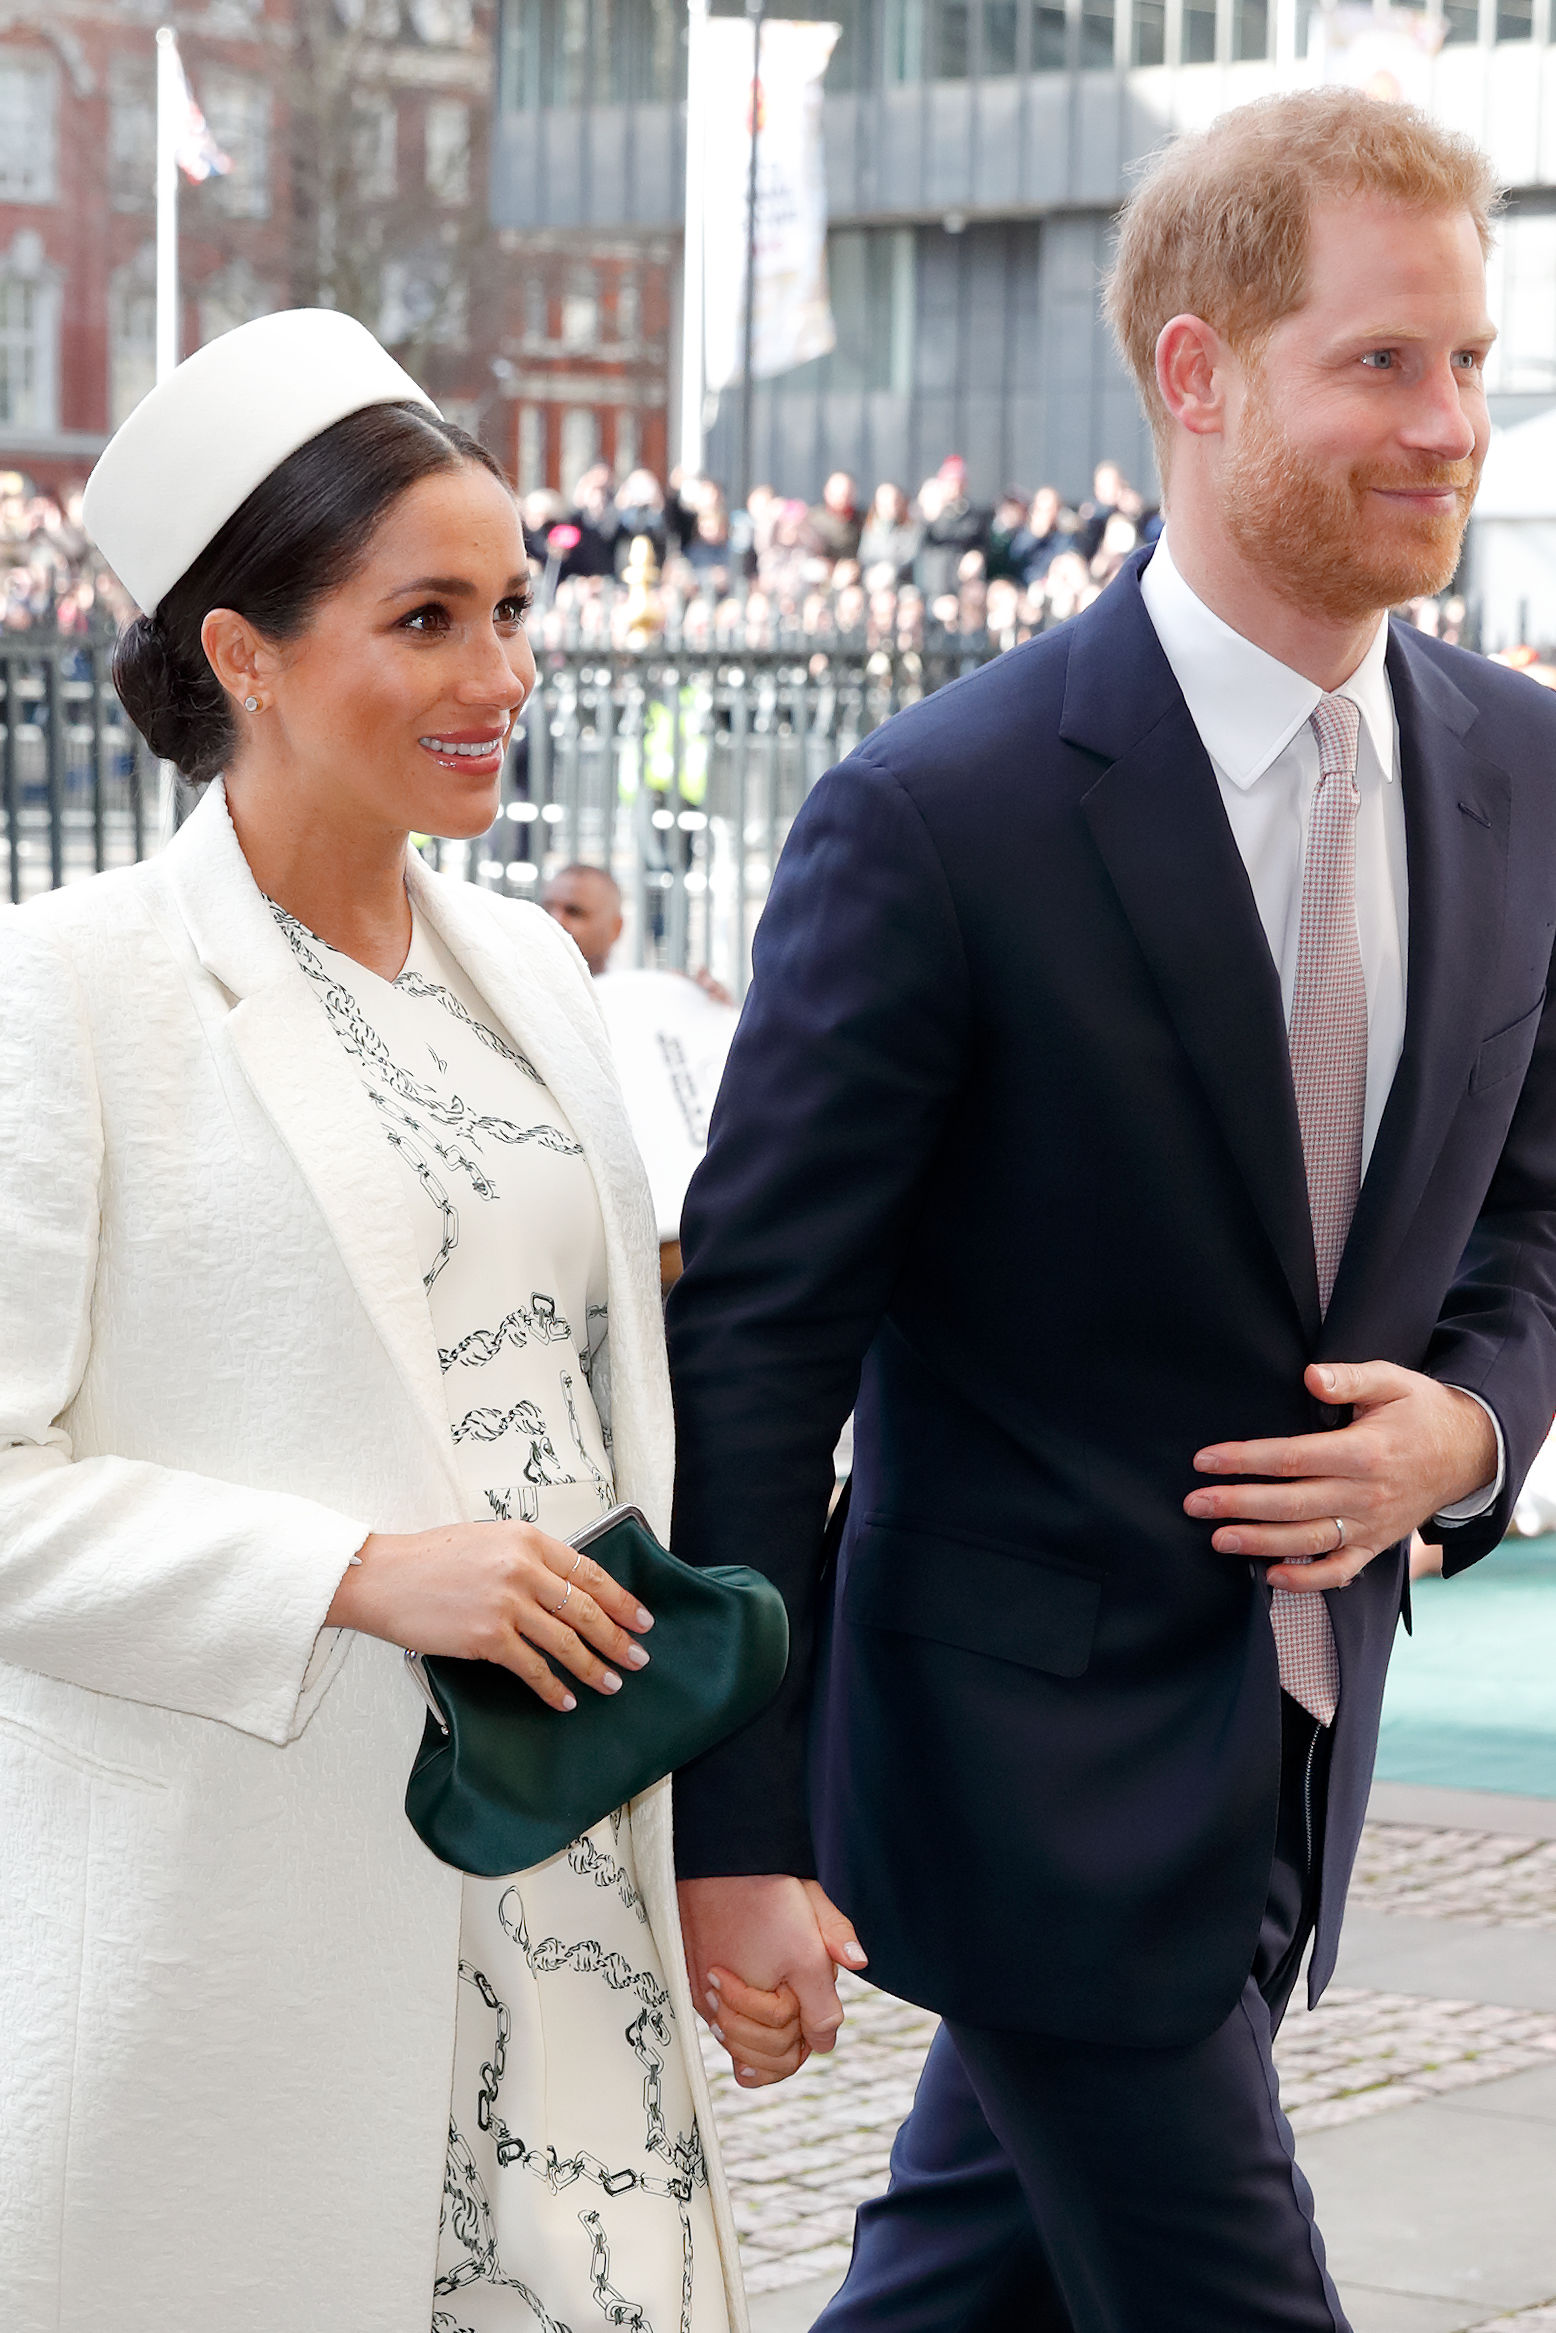 Meghan Markle Plans on Gifting Her Baby Boy This Classic Children's Book